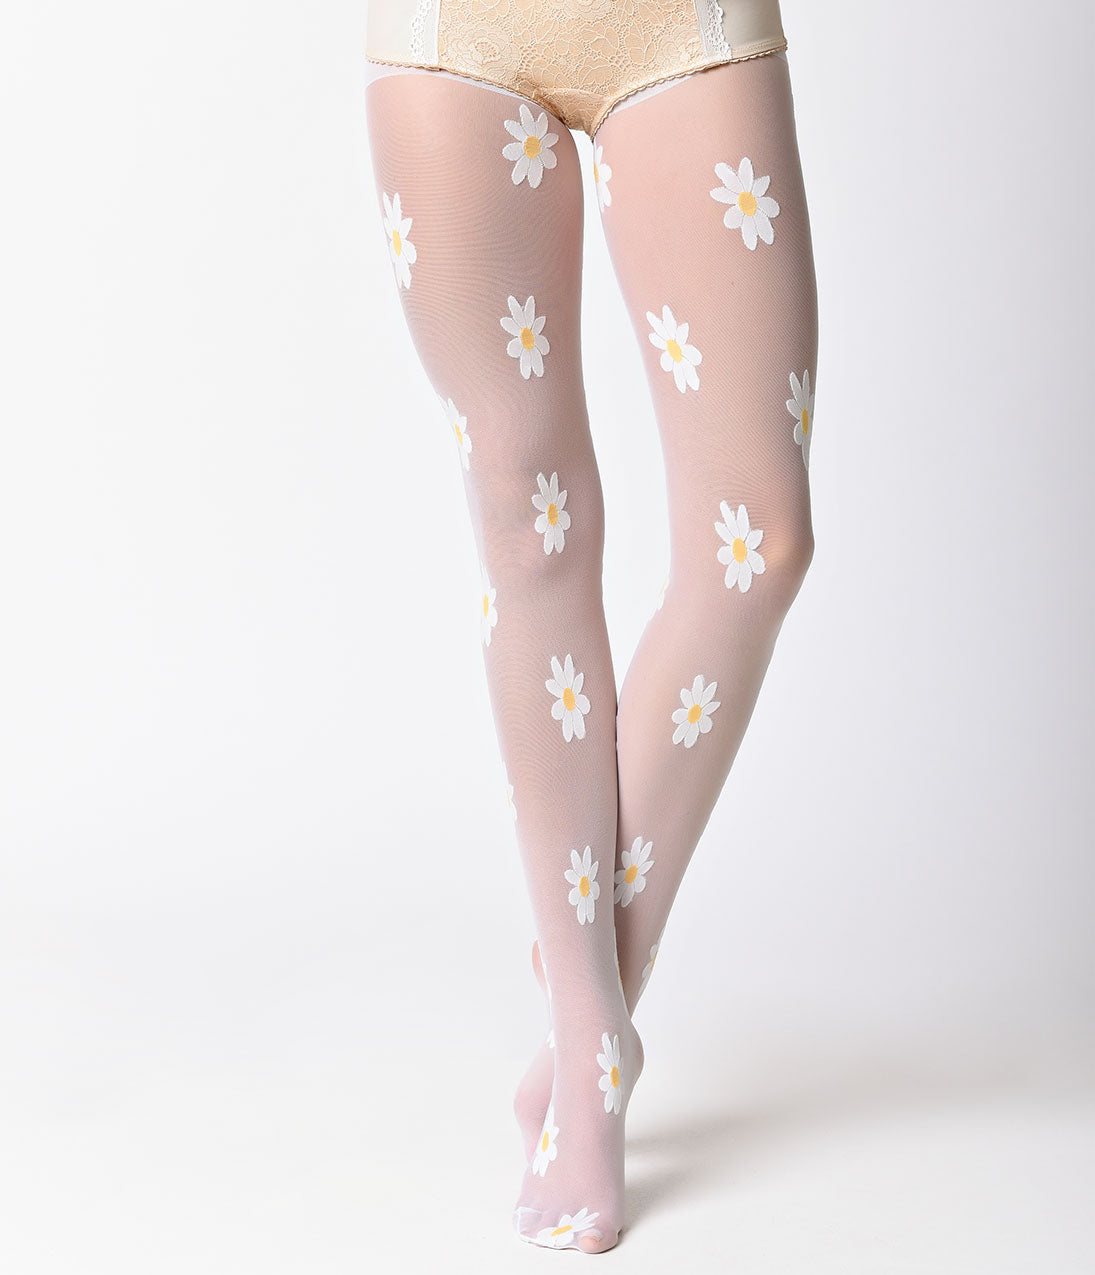 1960s Mad Men Dresses and Clothing Styles White Daisy Woven Sheer Pantyhose $12.00 AT vintagedancer.com